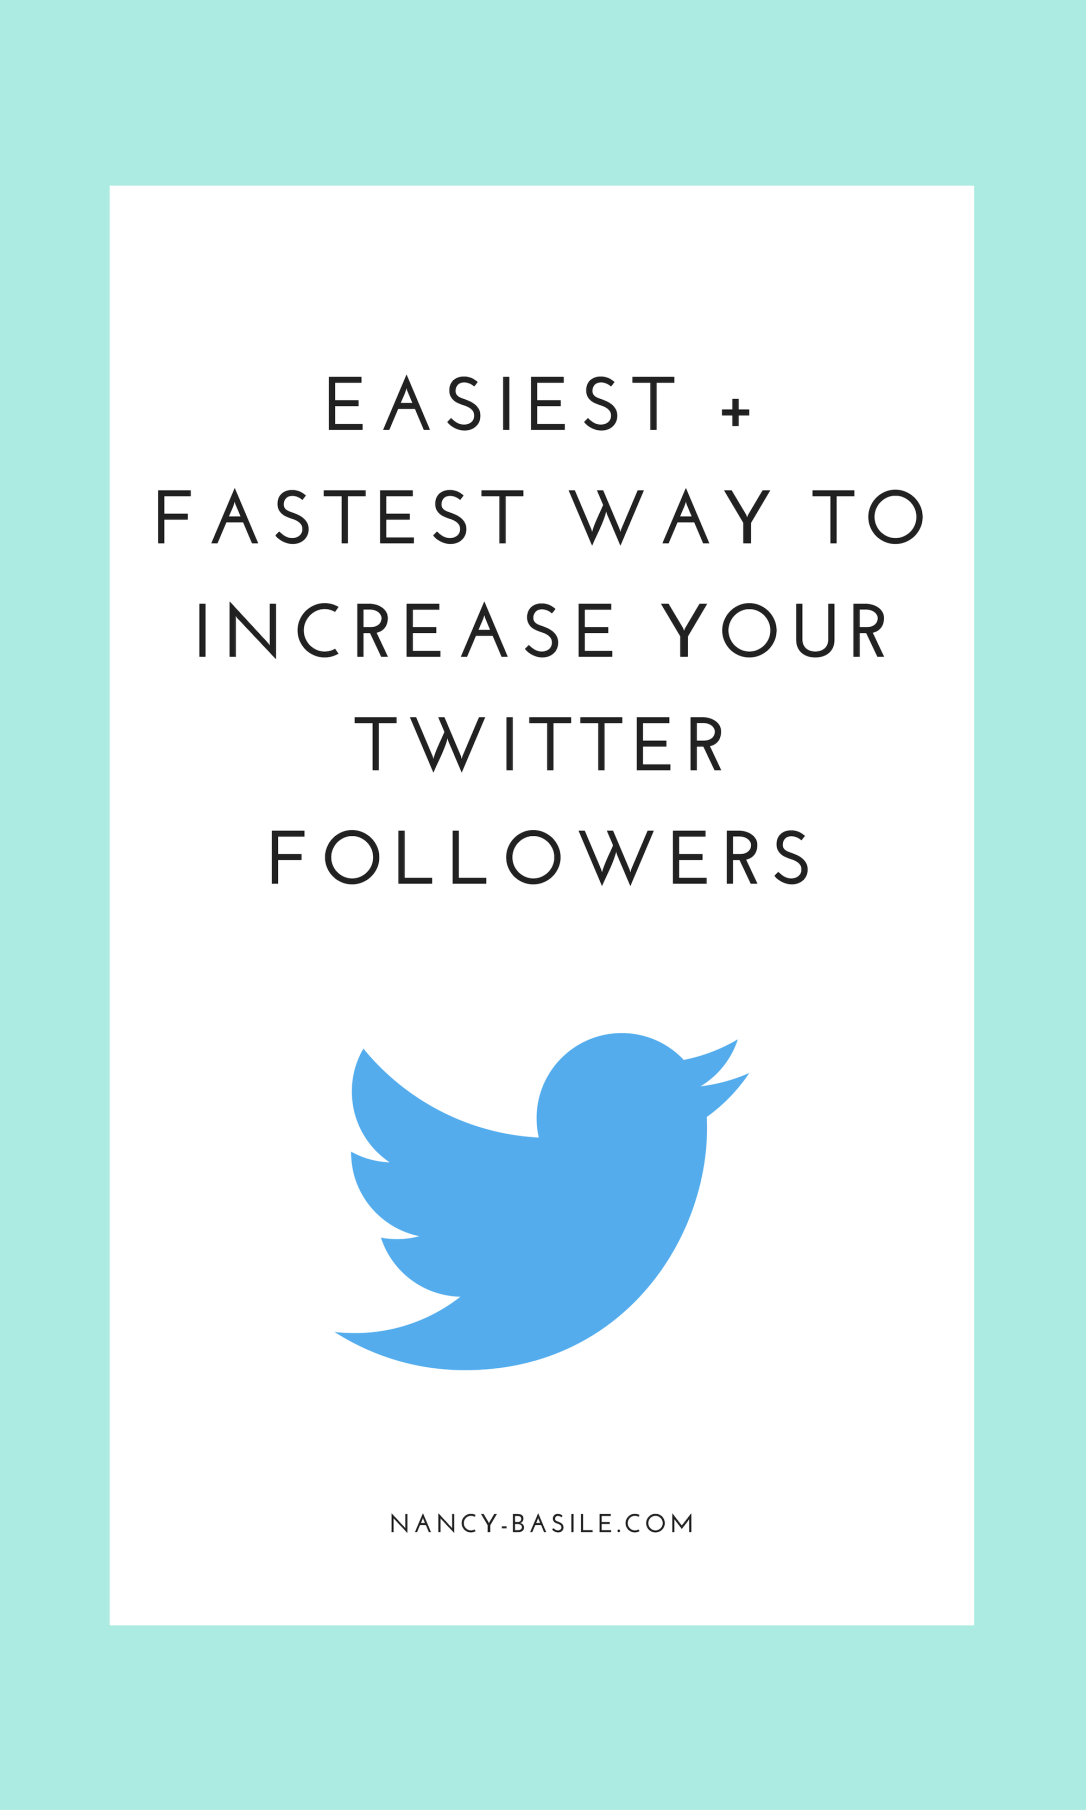 Easiest and Fastest Way to Increase Twitter Followers